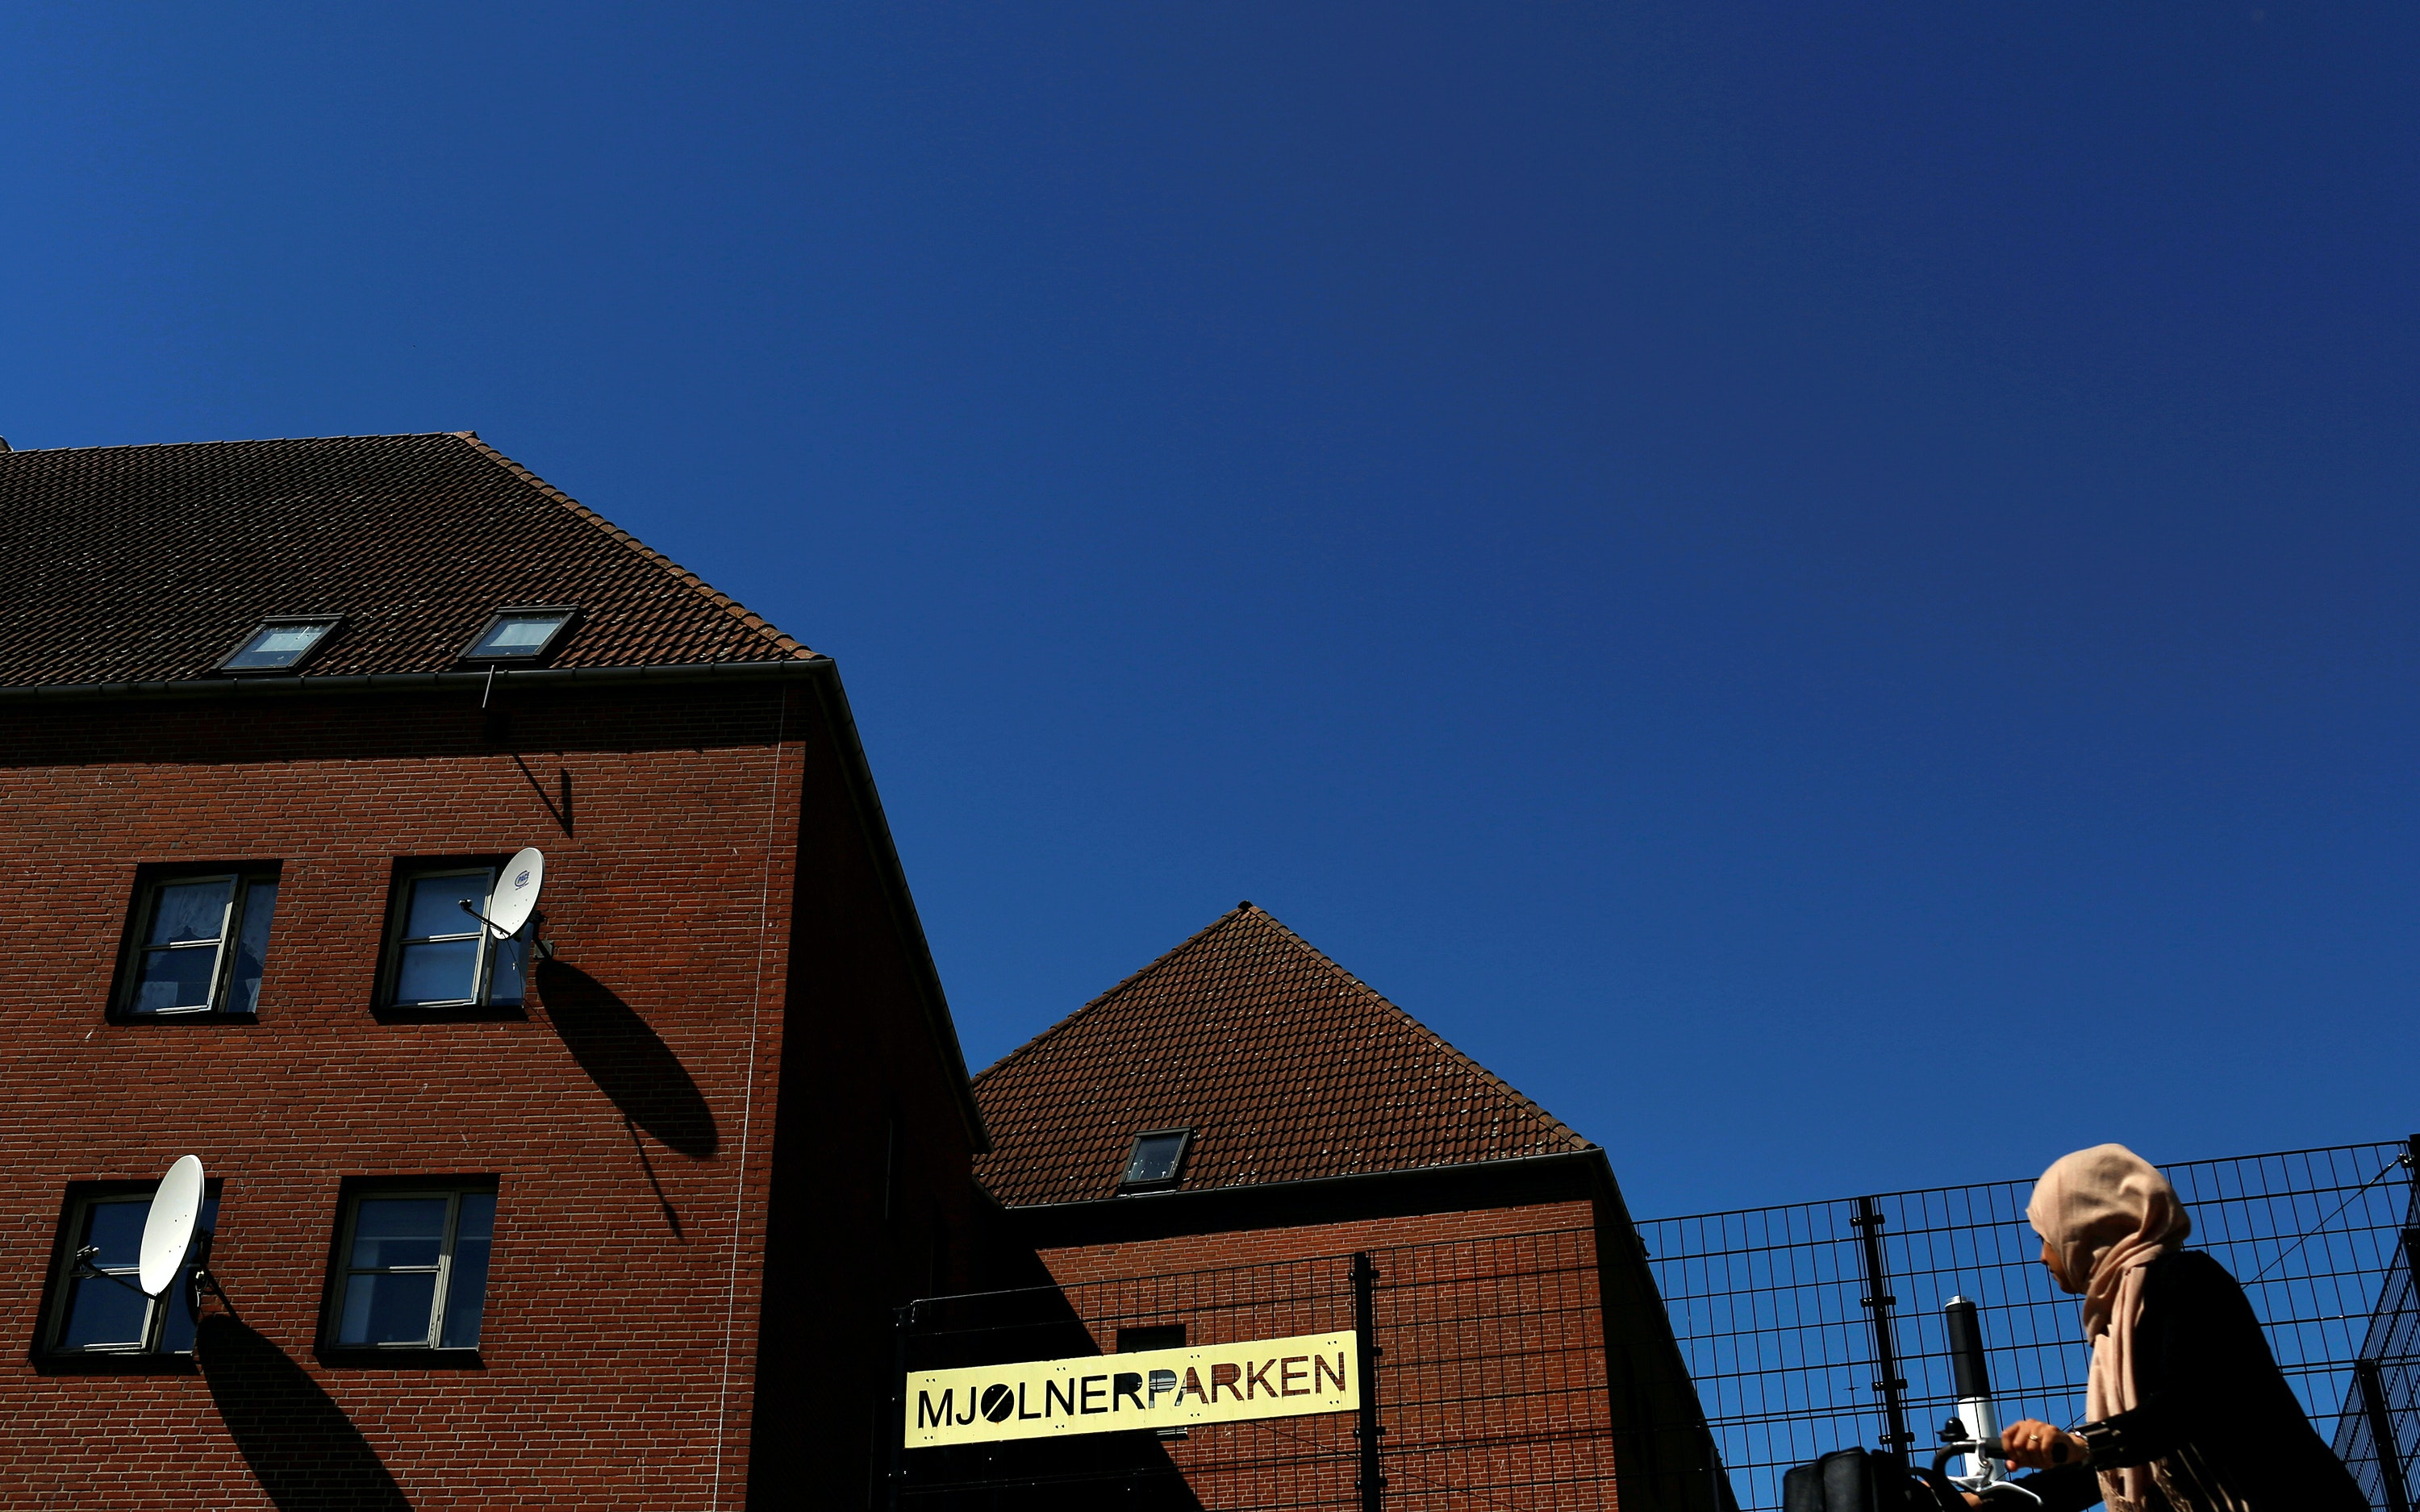 A woman in a pink headscarf walks past red brick buildings under a blue sky